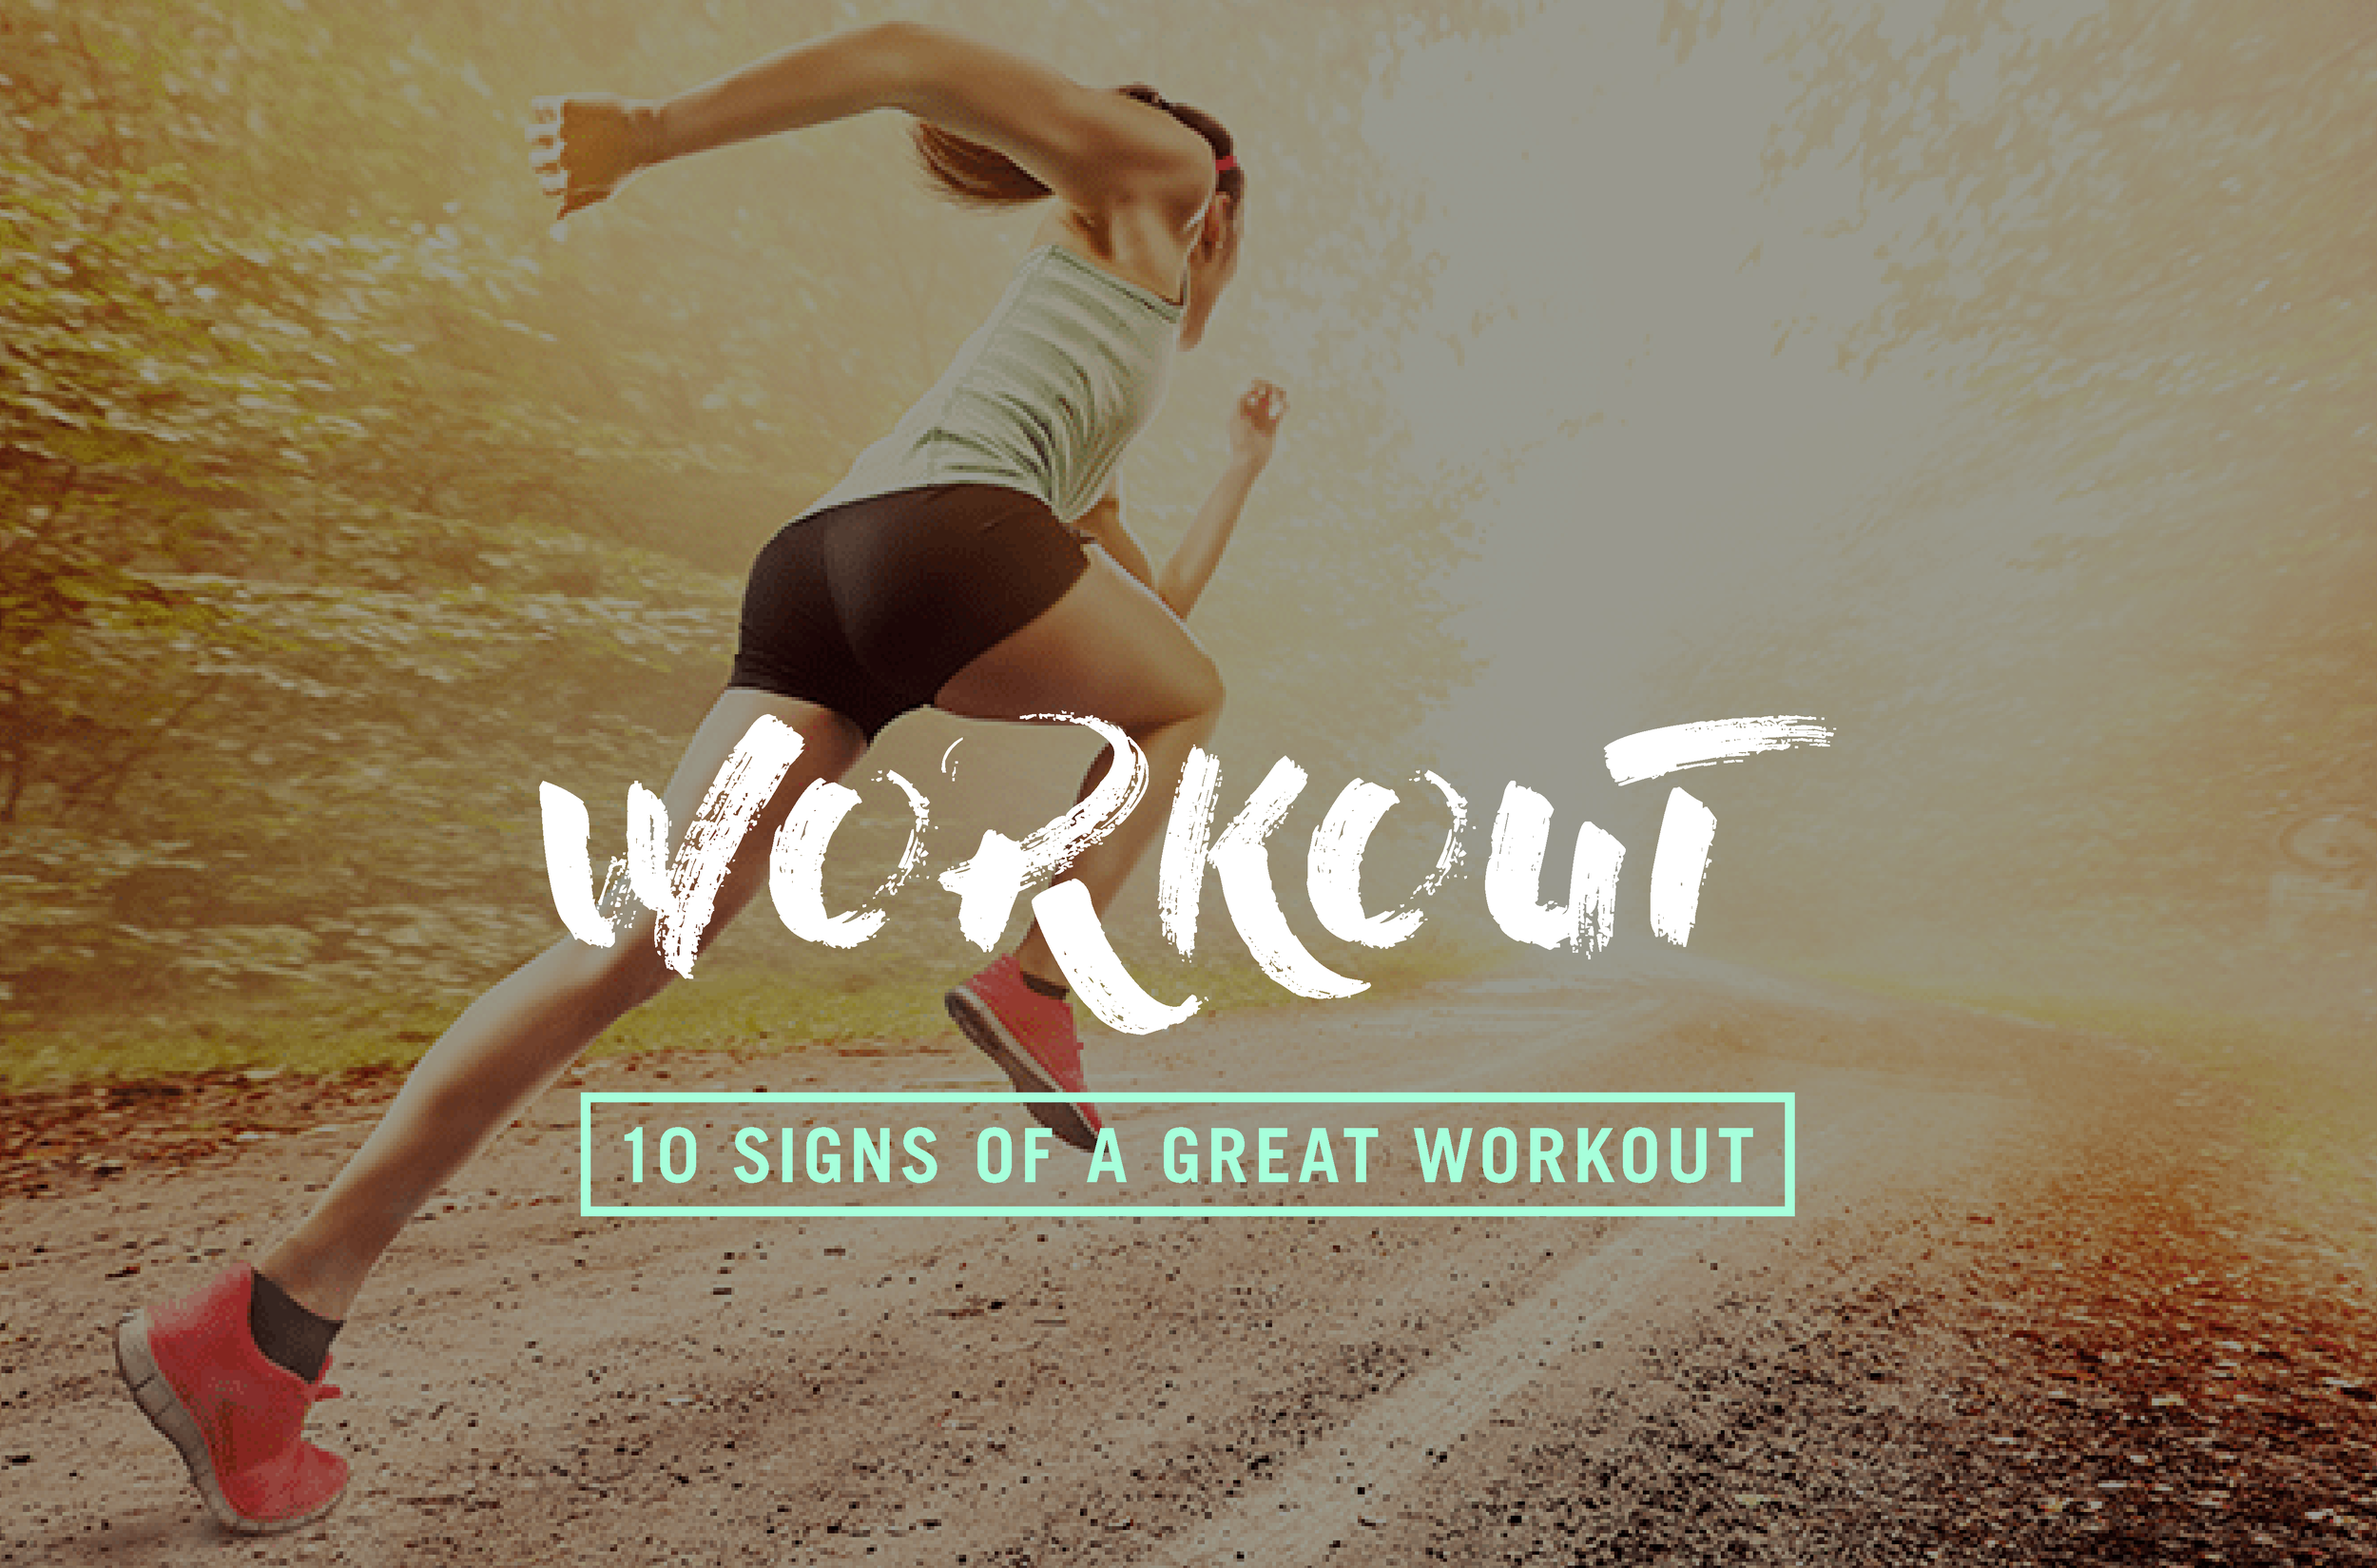 10-signs-of-a-great-workout.png